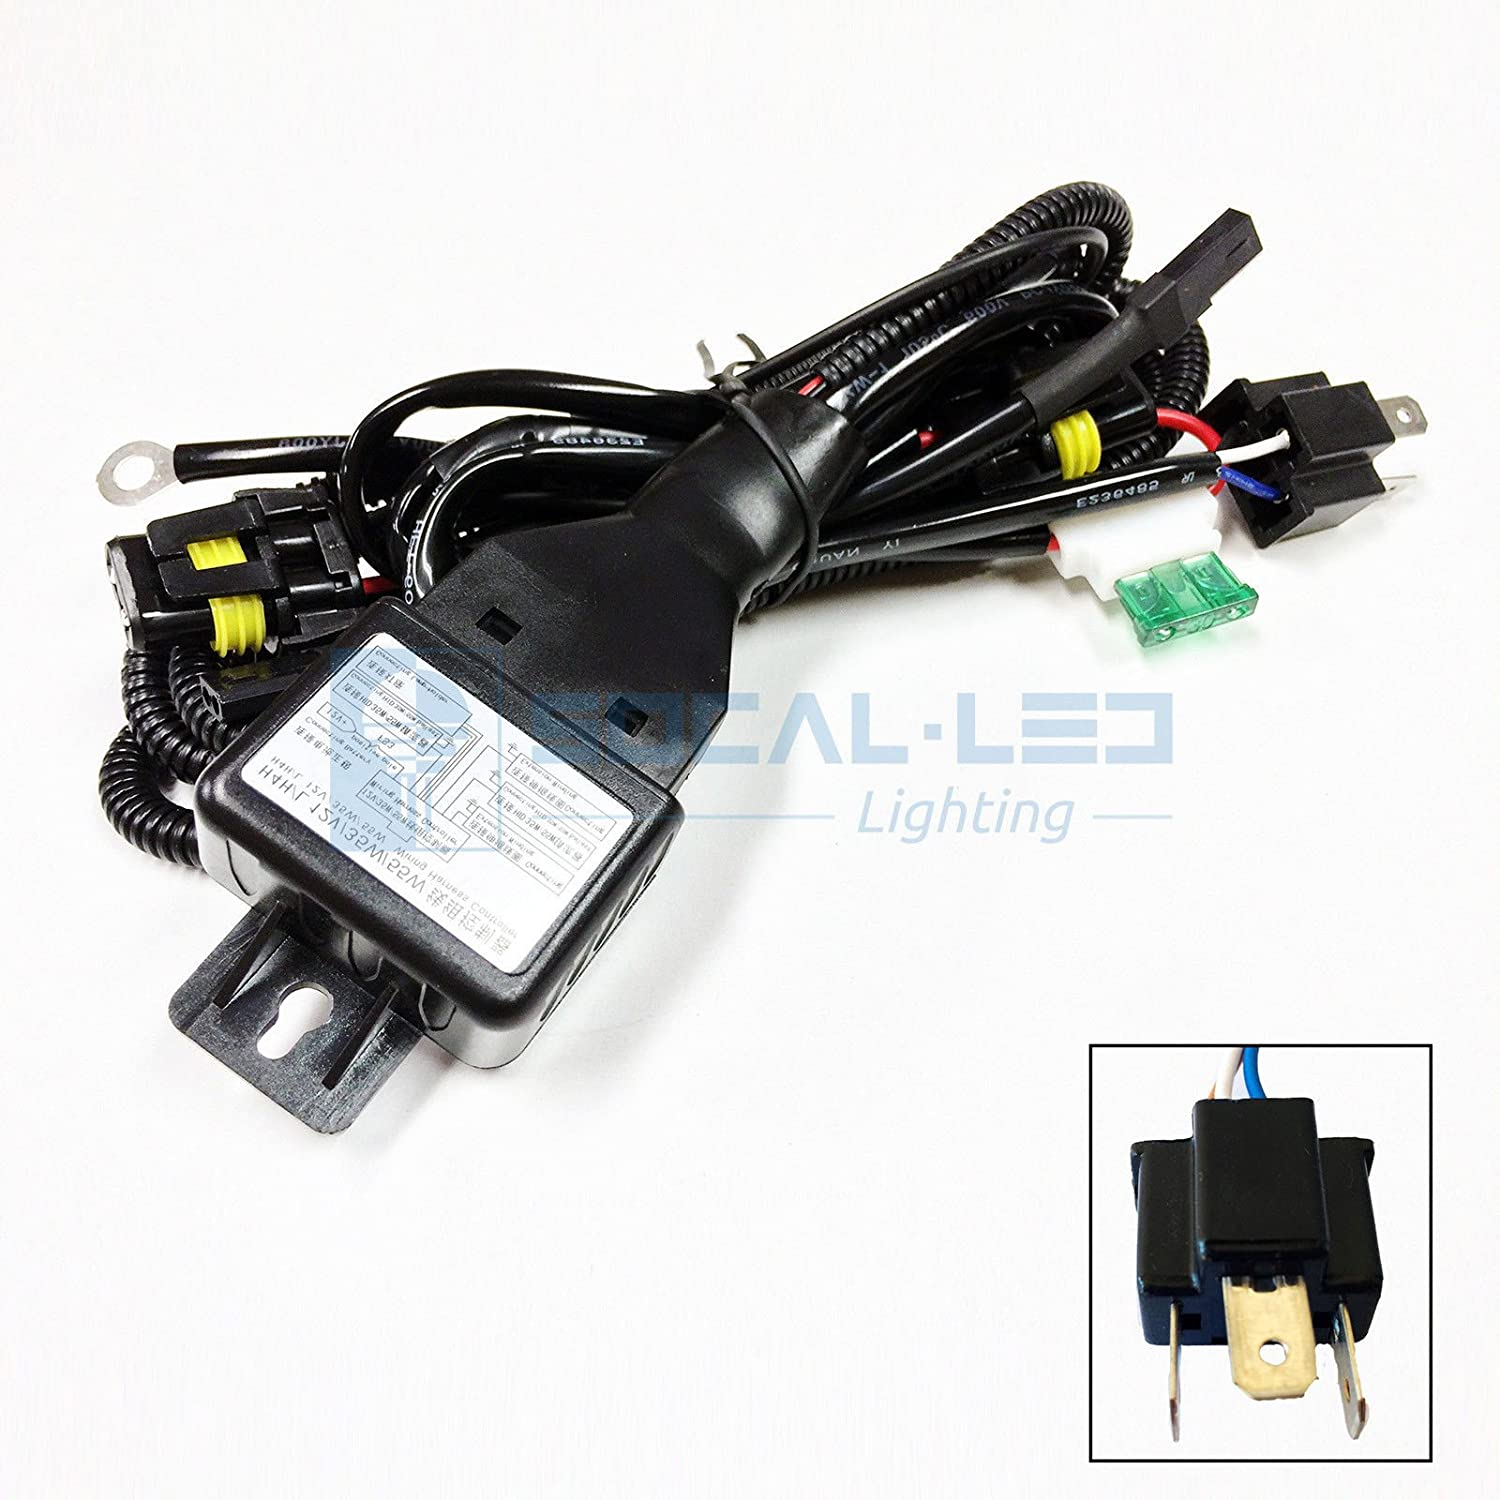 81lX2OBNA6L._SL1500_ amazon com o nex hid relay harness h4 (9003 hb2) 12v 35w 55w bi h4 hid wiring harness controller at creativeand.co